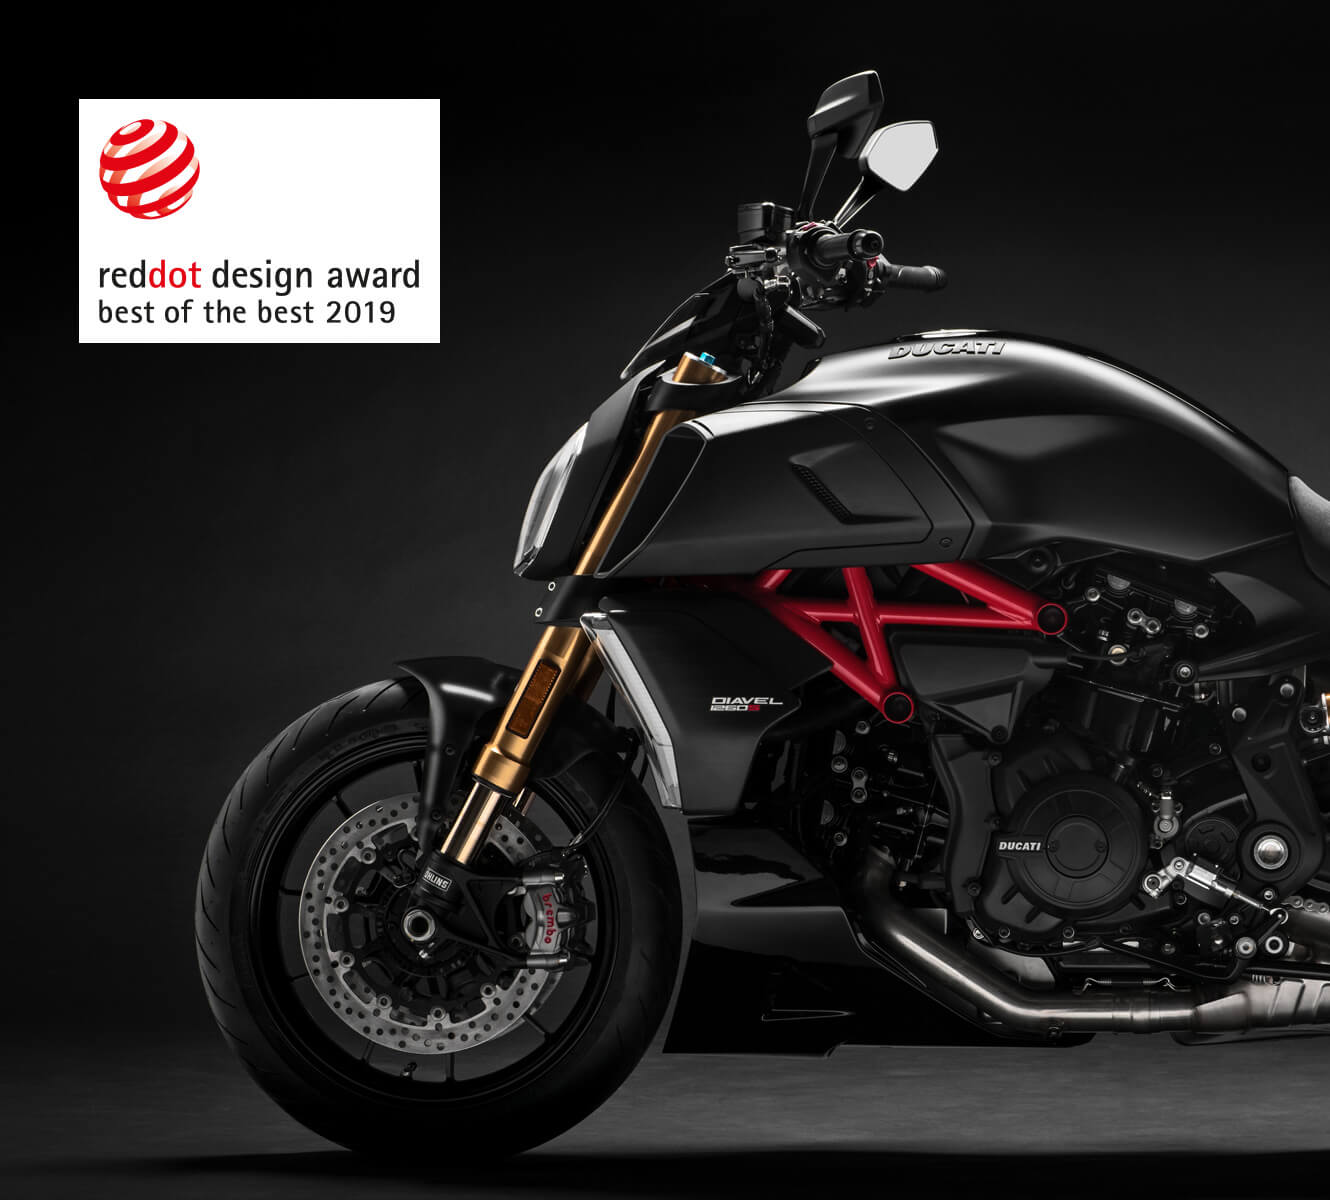 Ducati Diavel 1260 - reddot design award - Best of the best 2019